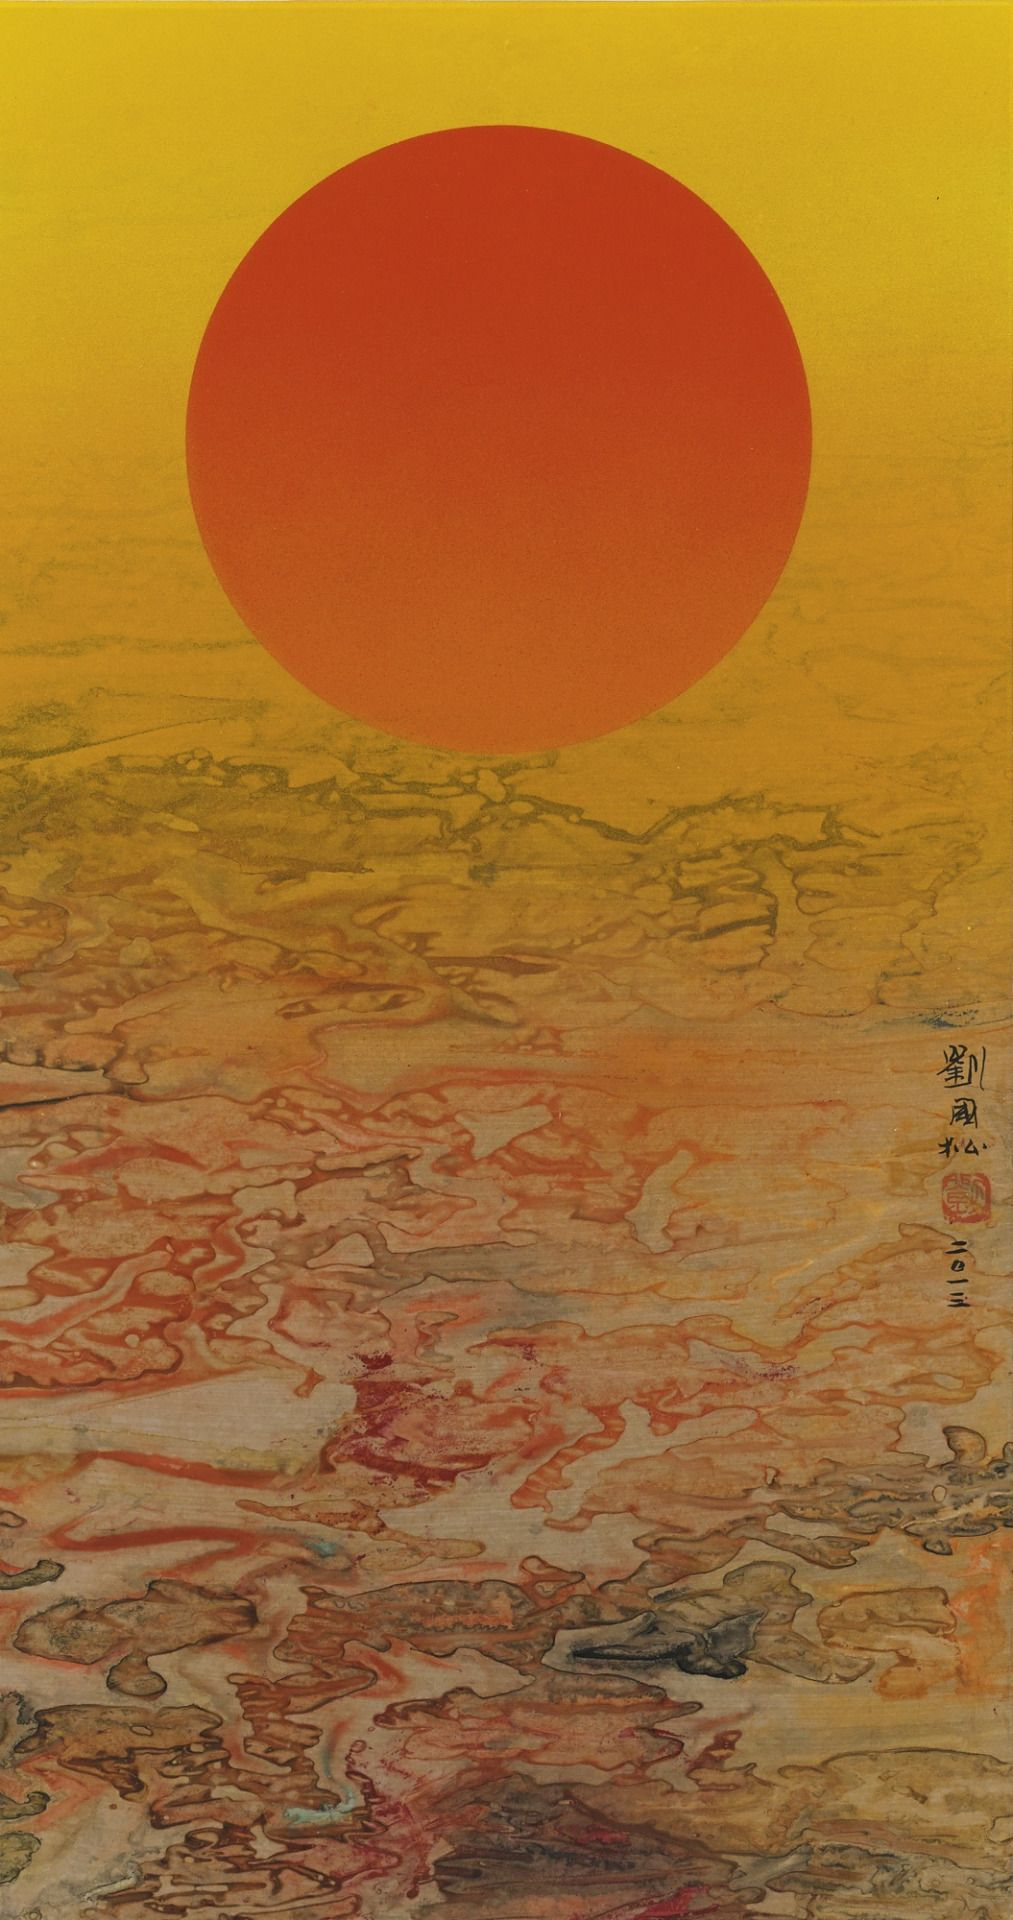 Liu Kuo-Sung (Chinese, b. 1932), The Sun at Jiuzhaigou, 2013. Ink and colour on paper, 64.8 x 34.5 cm.